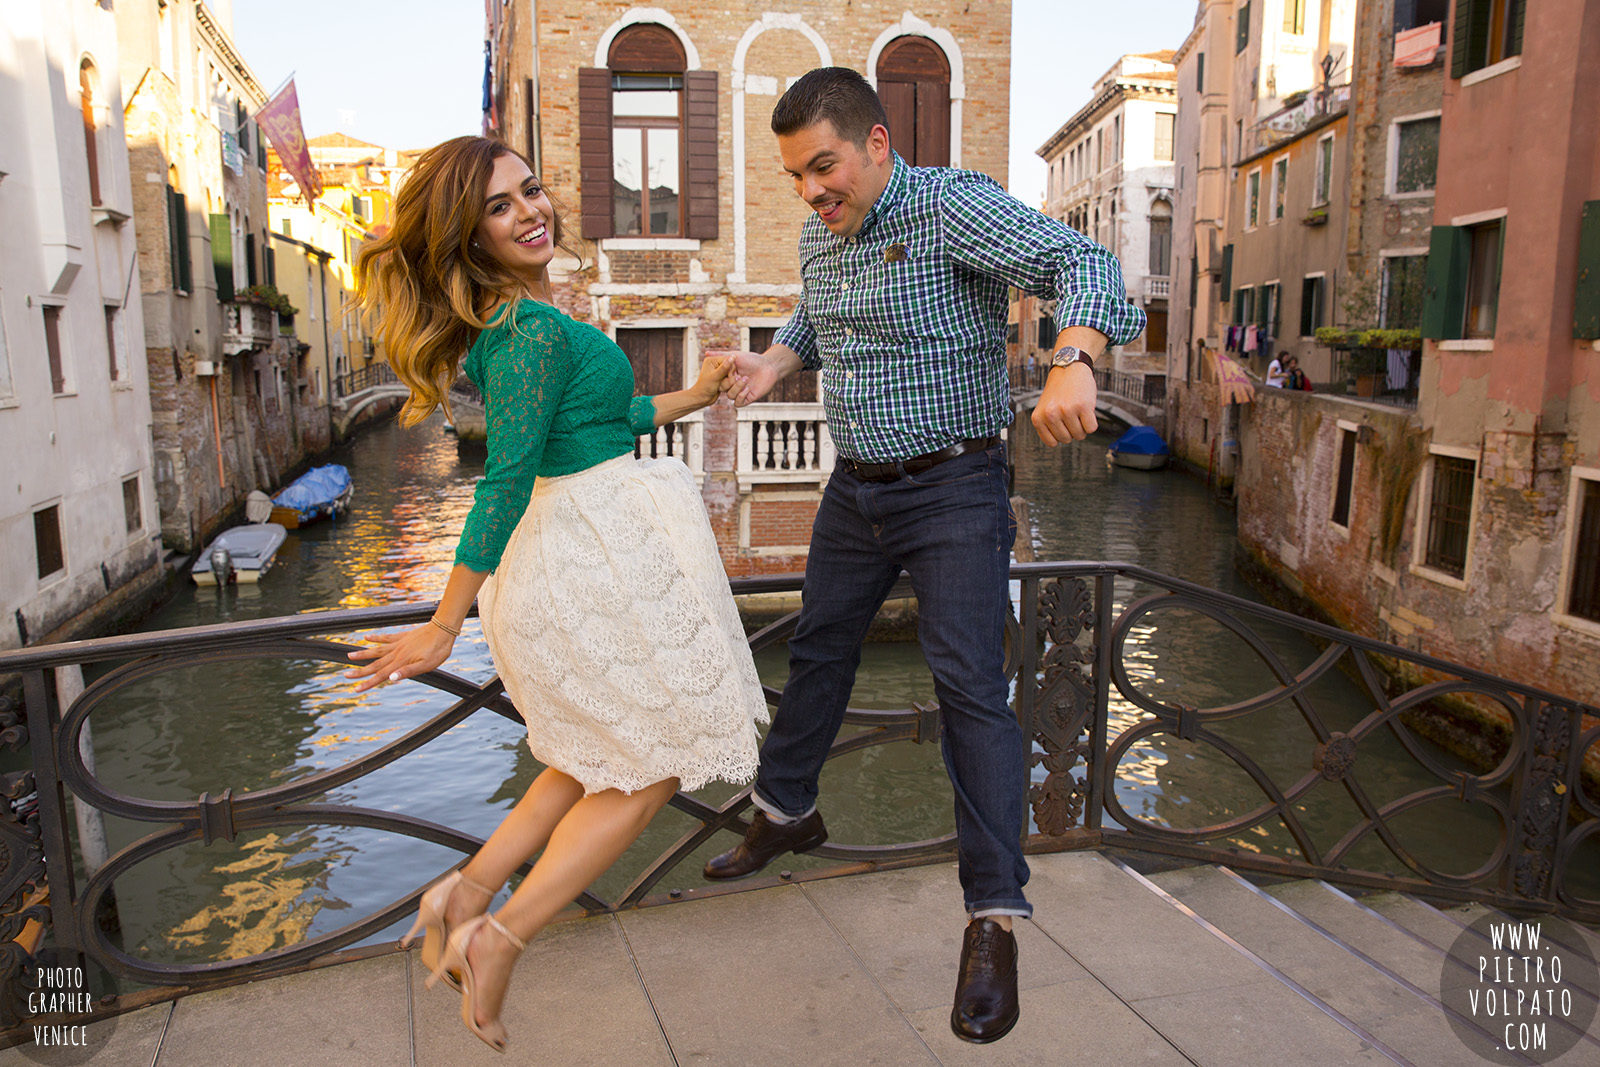 photographer-venice-photo-shoot-couple-wedding-anniversary-vacation-pictures-20160914_01